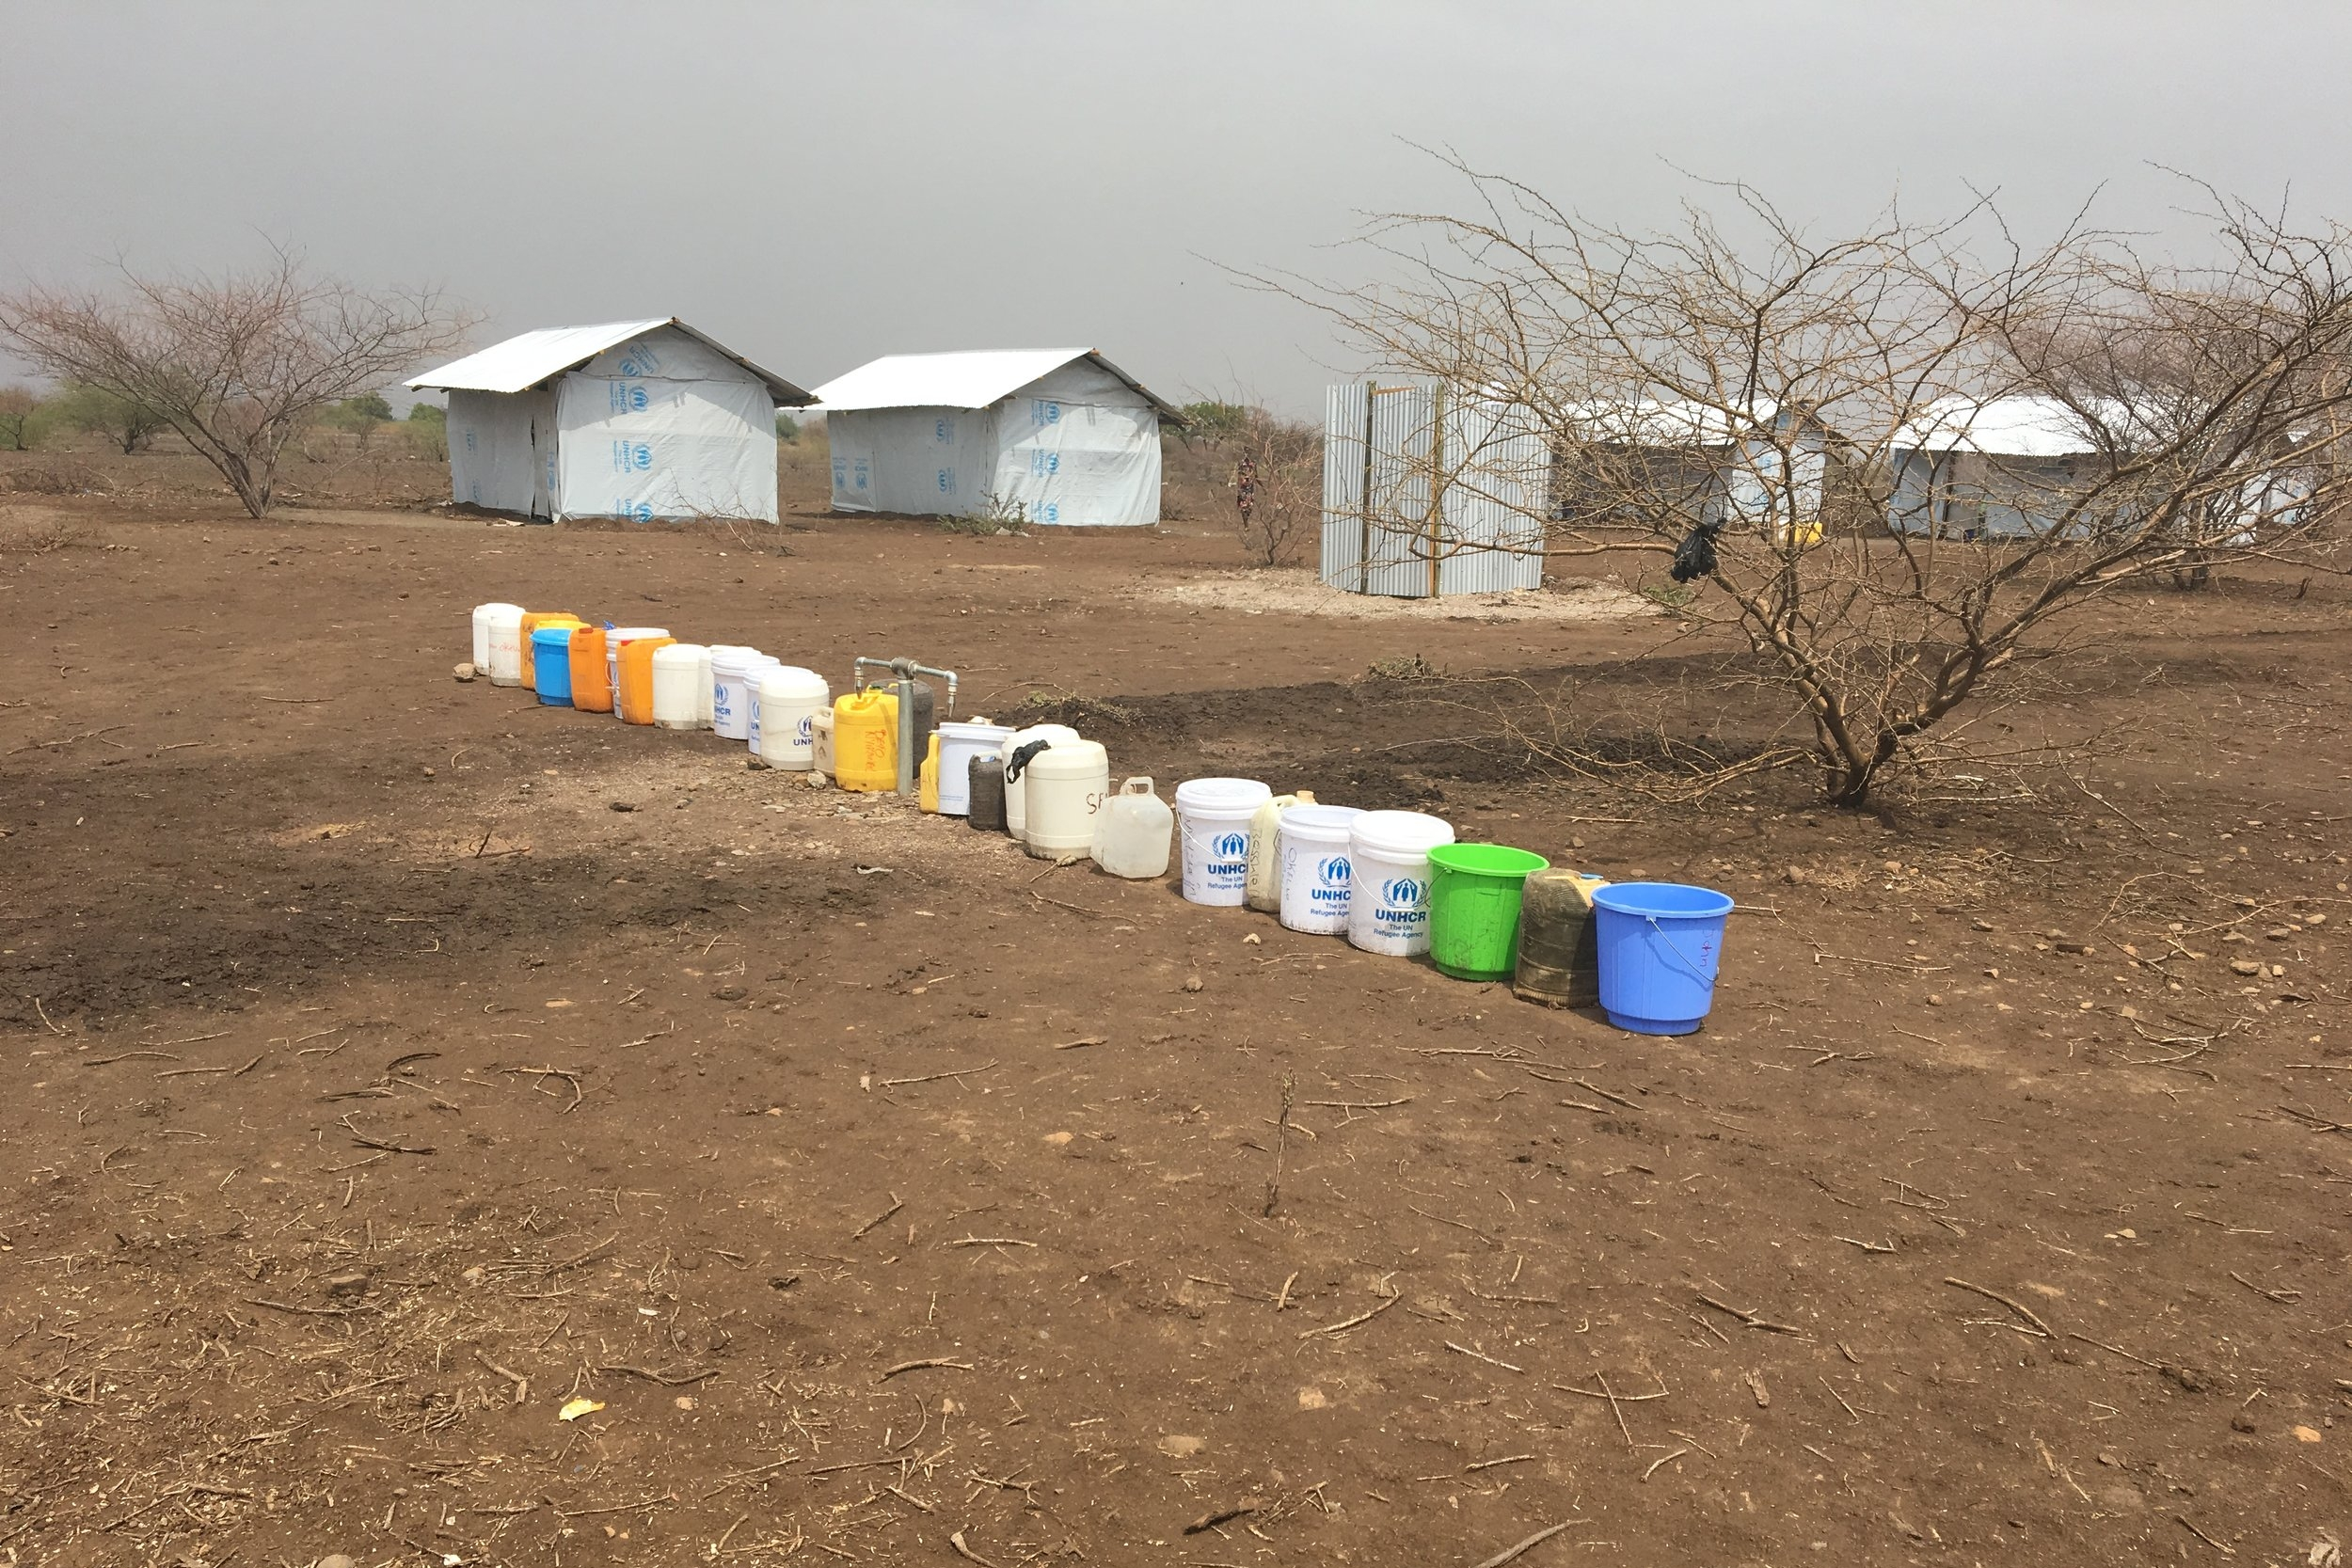 Jerry cans queued at water tap in Kalobeyei ©FilmAid/OCallaghan